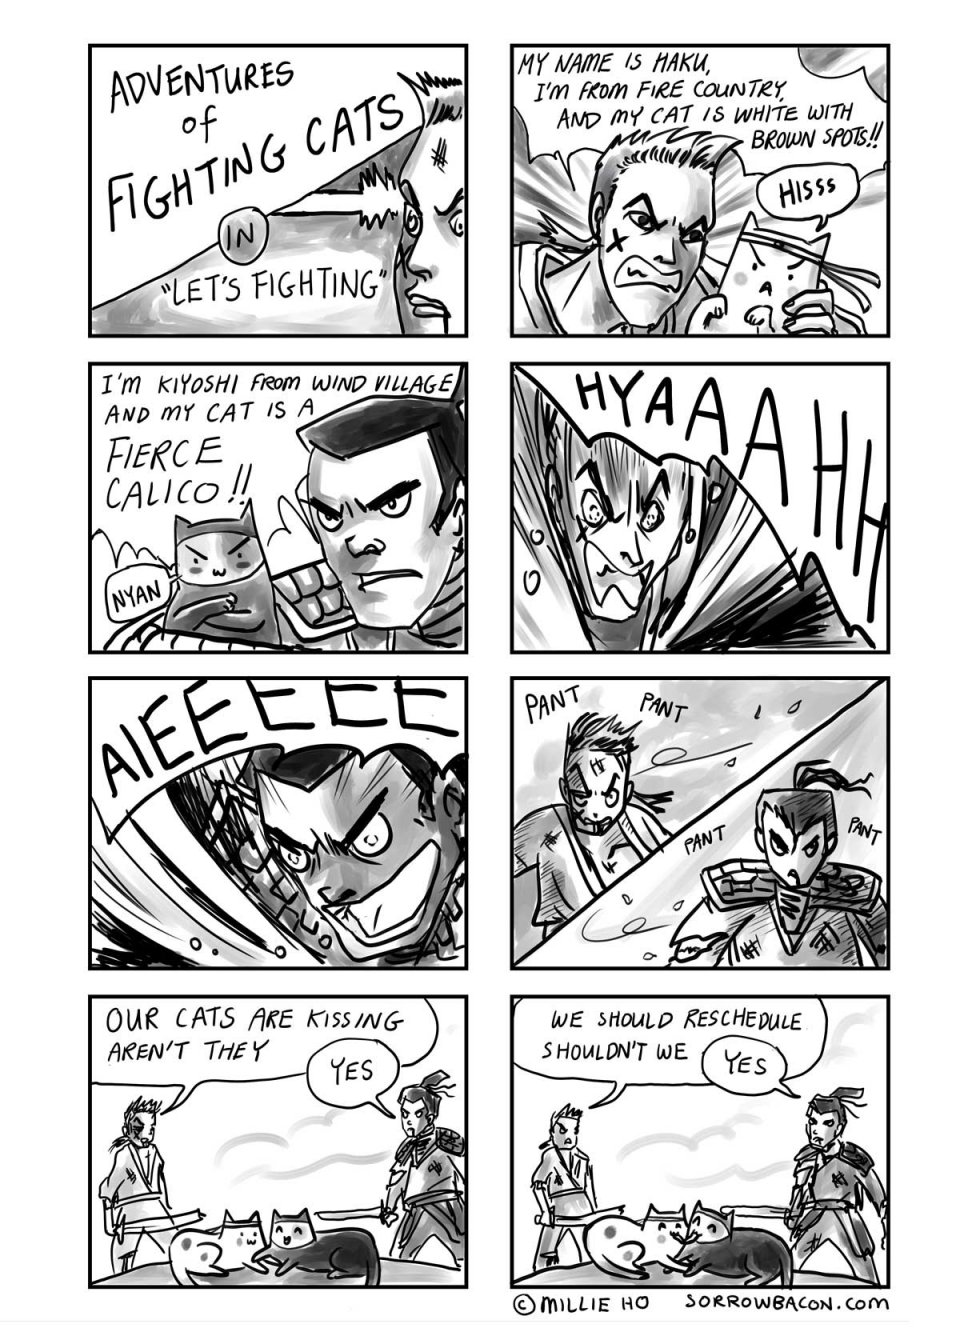 SORROWBACON Let's Fighting Cats Comic